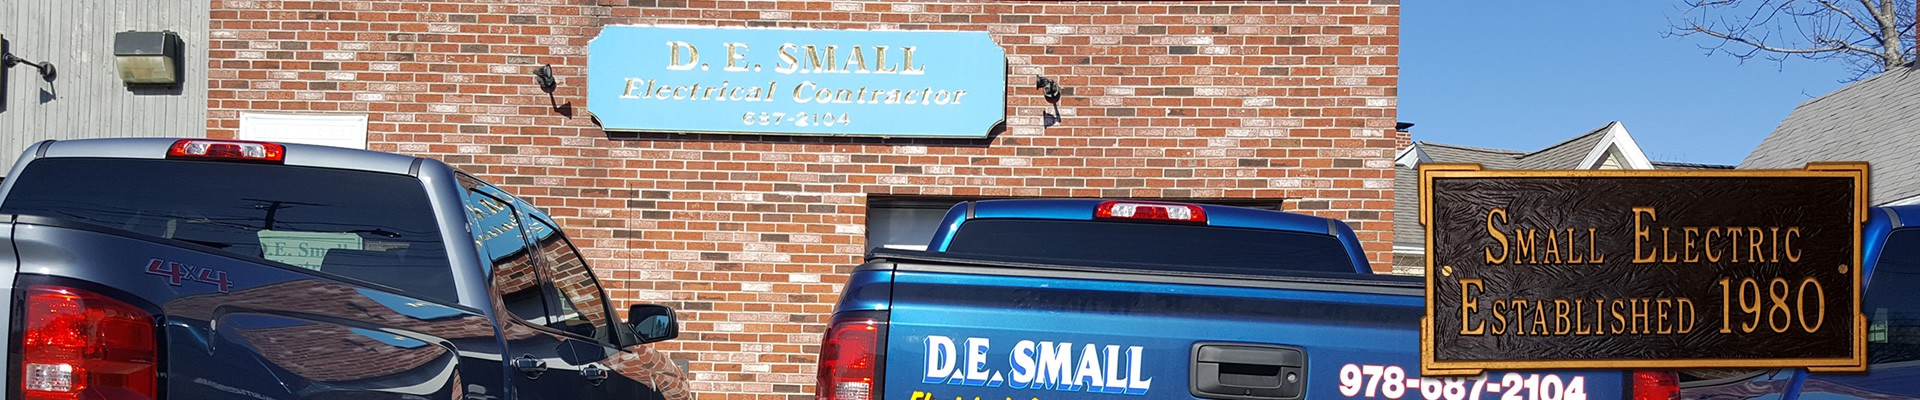 D.E. Small Electrica & Media Solutions 9 Waverly Road North Andover, MA 02026